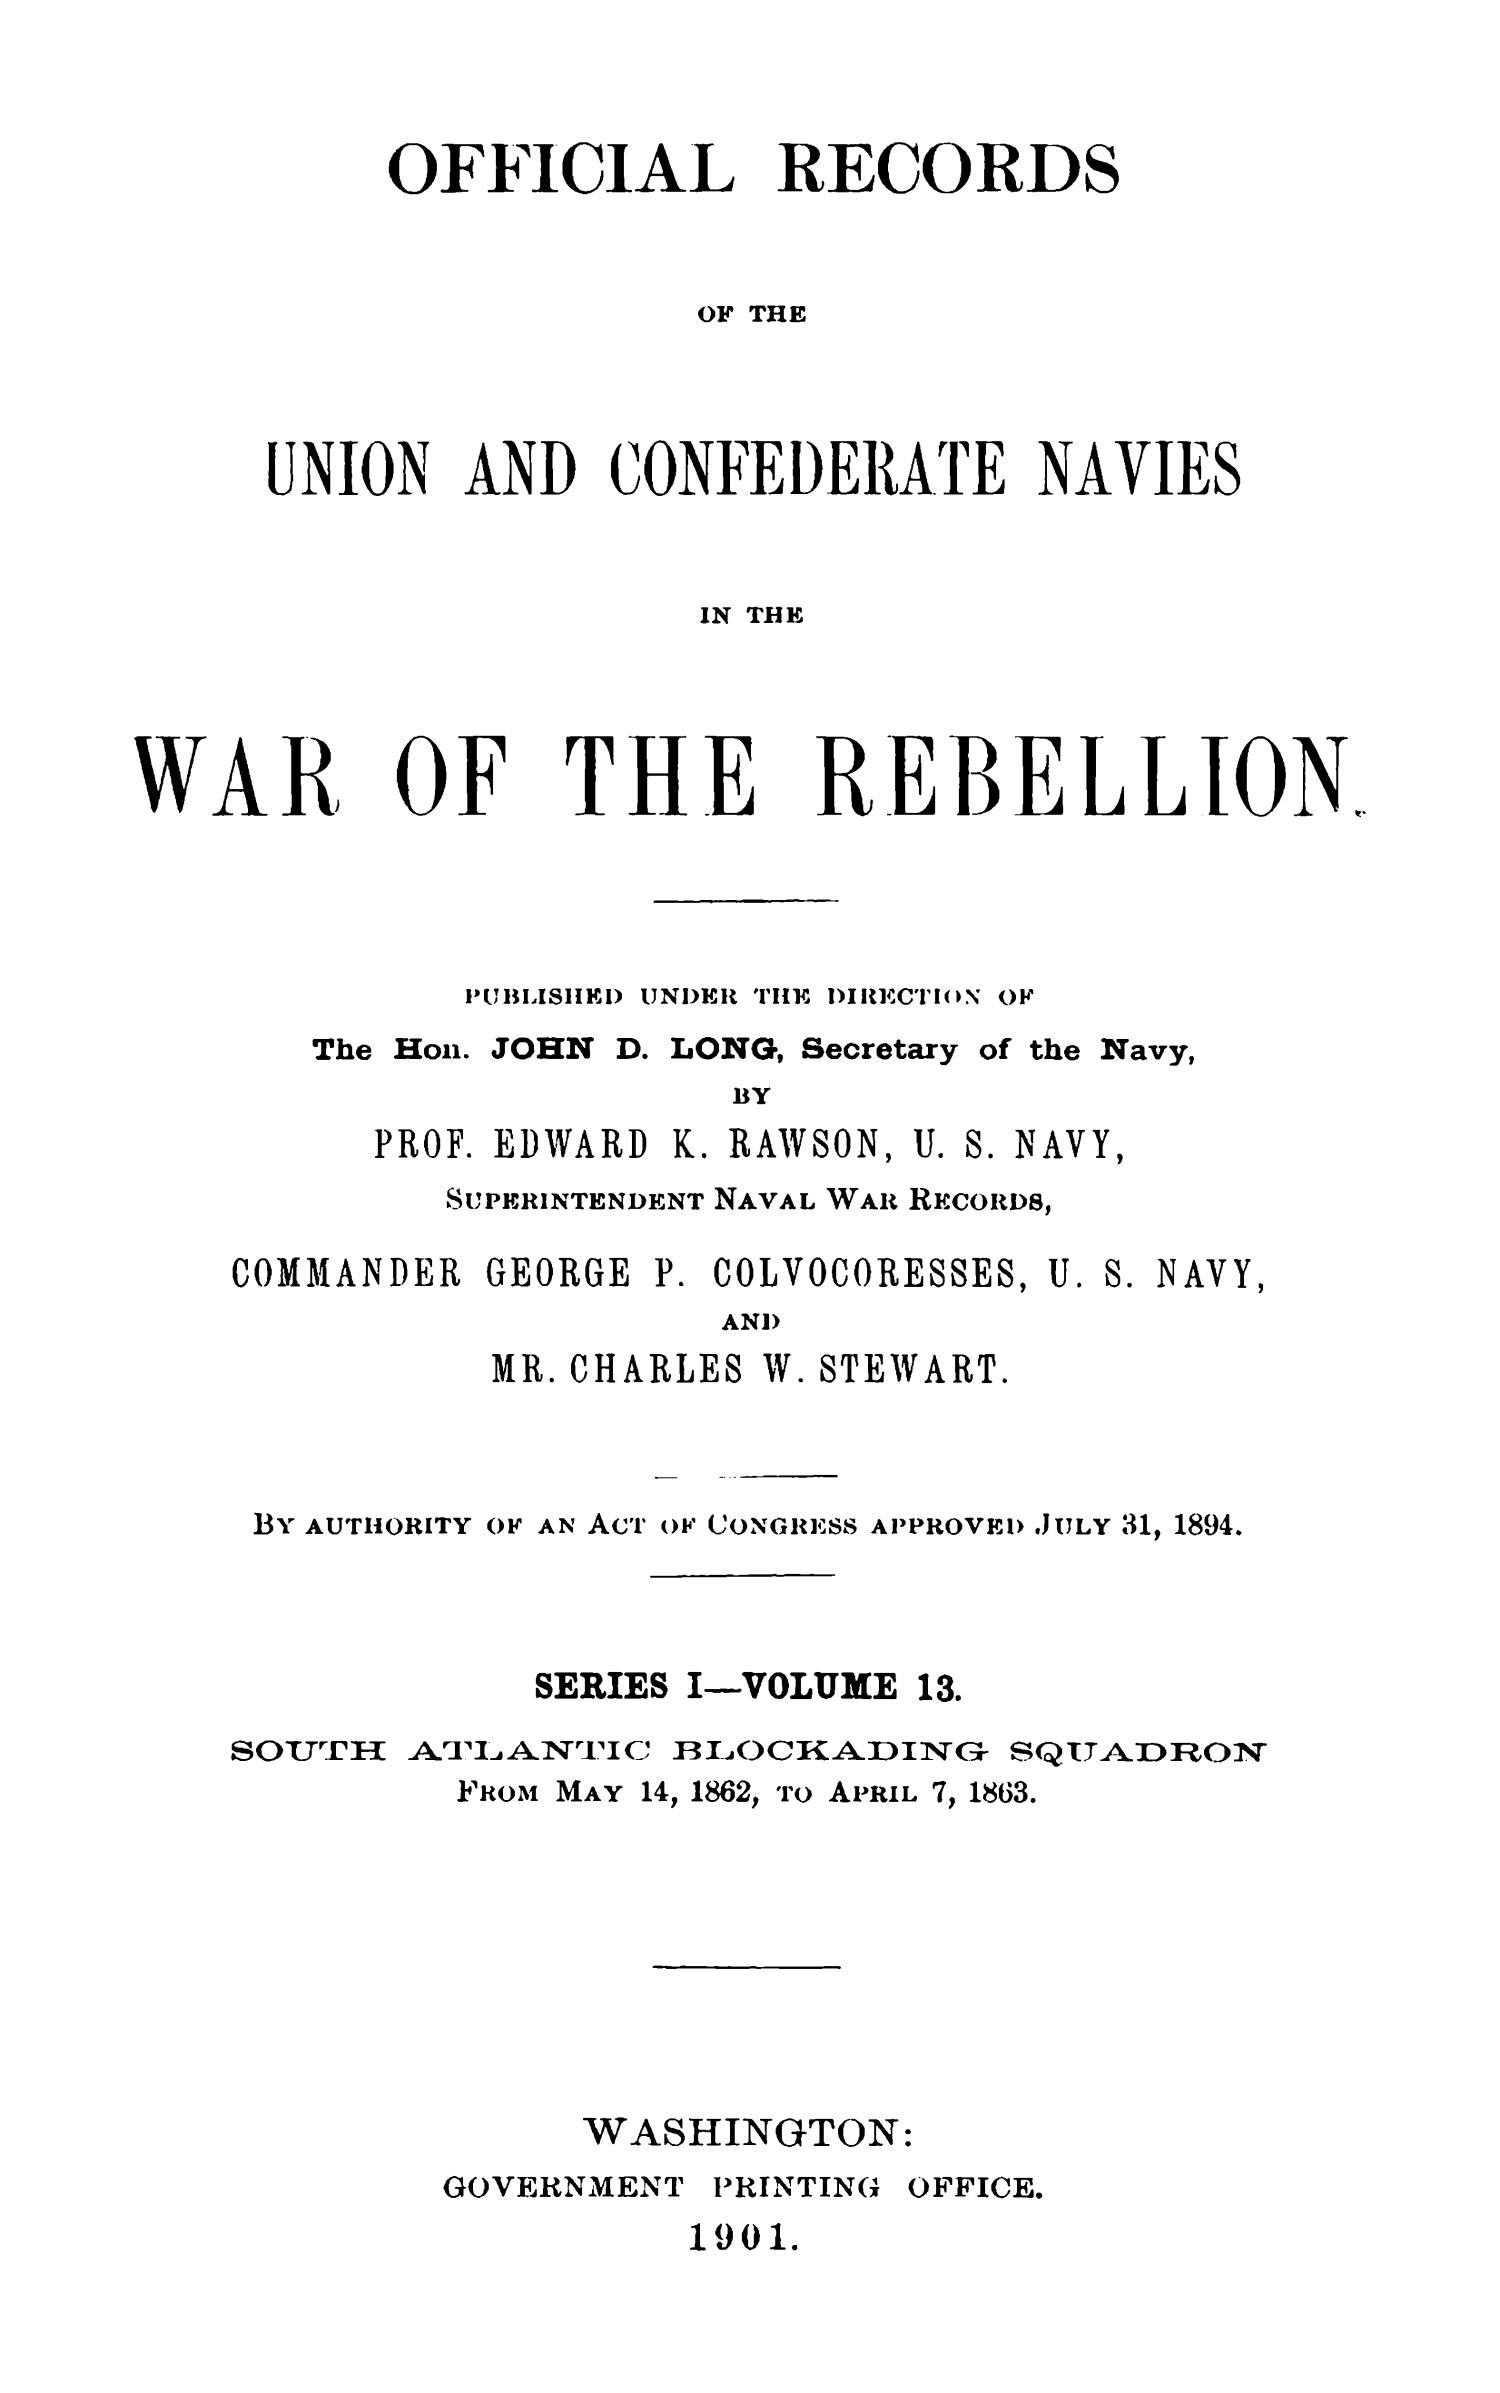 Official Records of the Union and Confederate Navies in the War of the Rebellion. Series 1, Volume 13.                                                                                                      Title Page